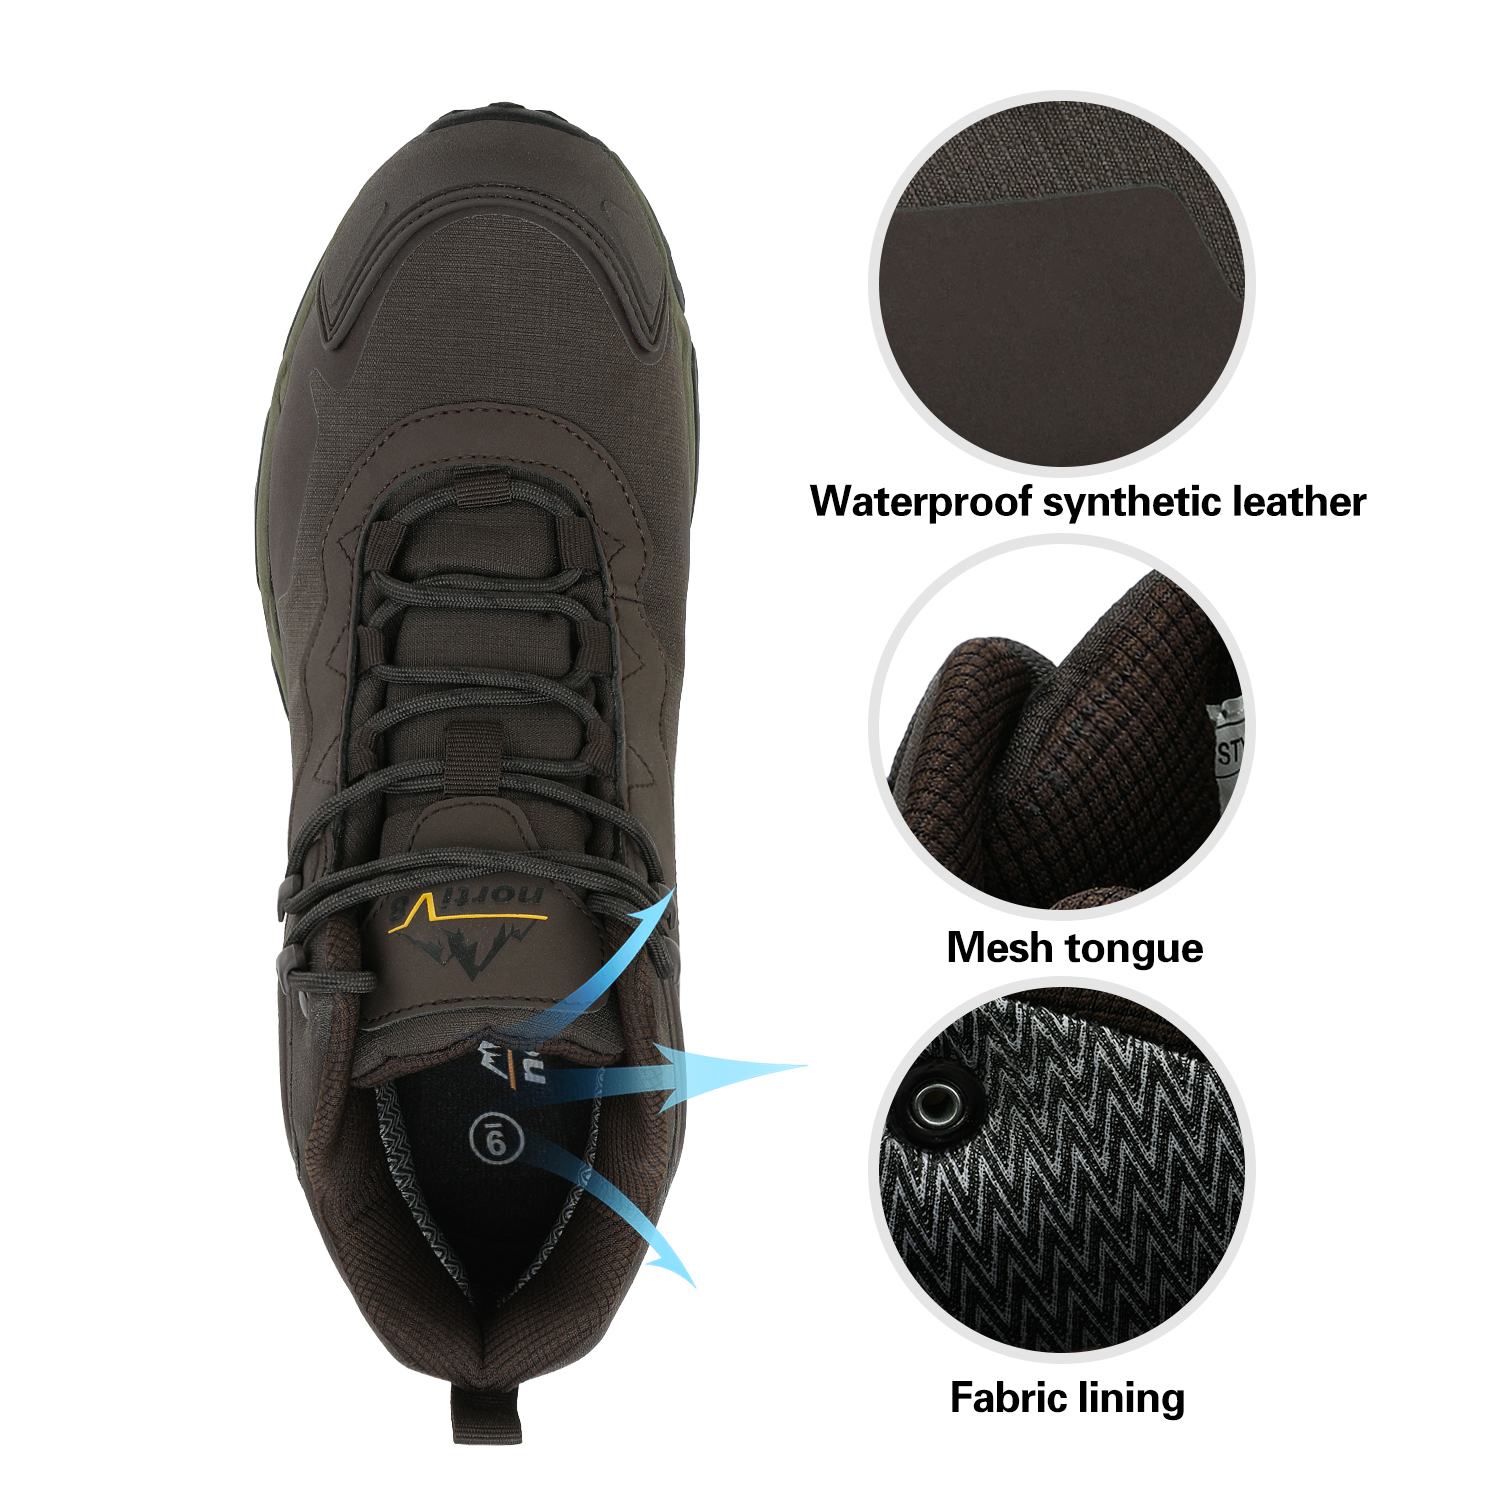 NORTIV-8-Men-039-s-Ankle-Waterproof-Hiking-Boots-Lightweight-Backpacking-Work-Shoes thumbnail 11